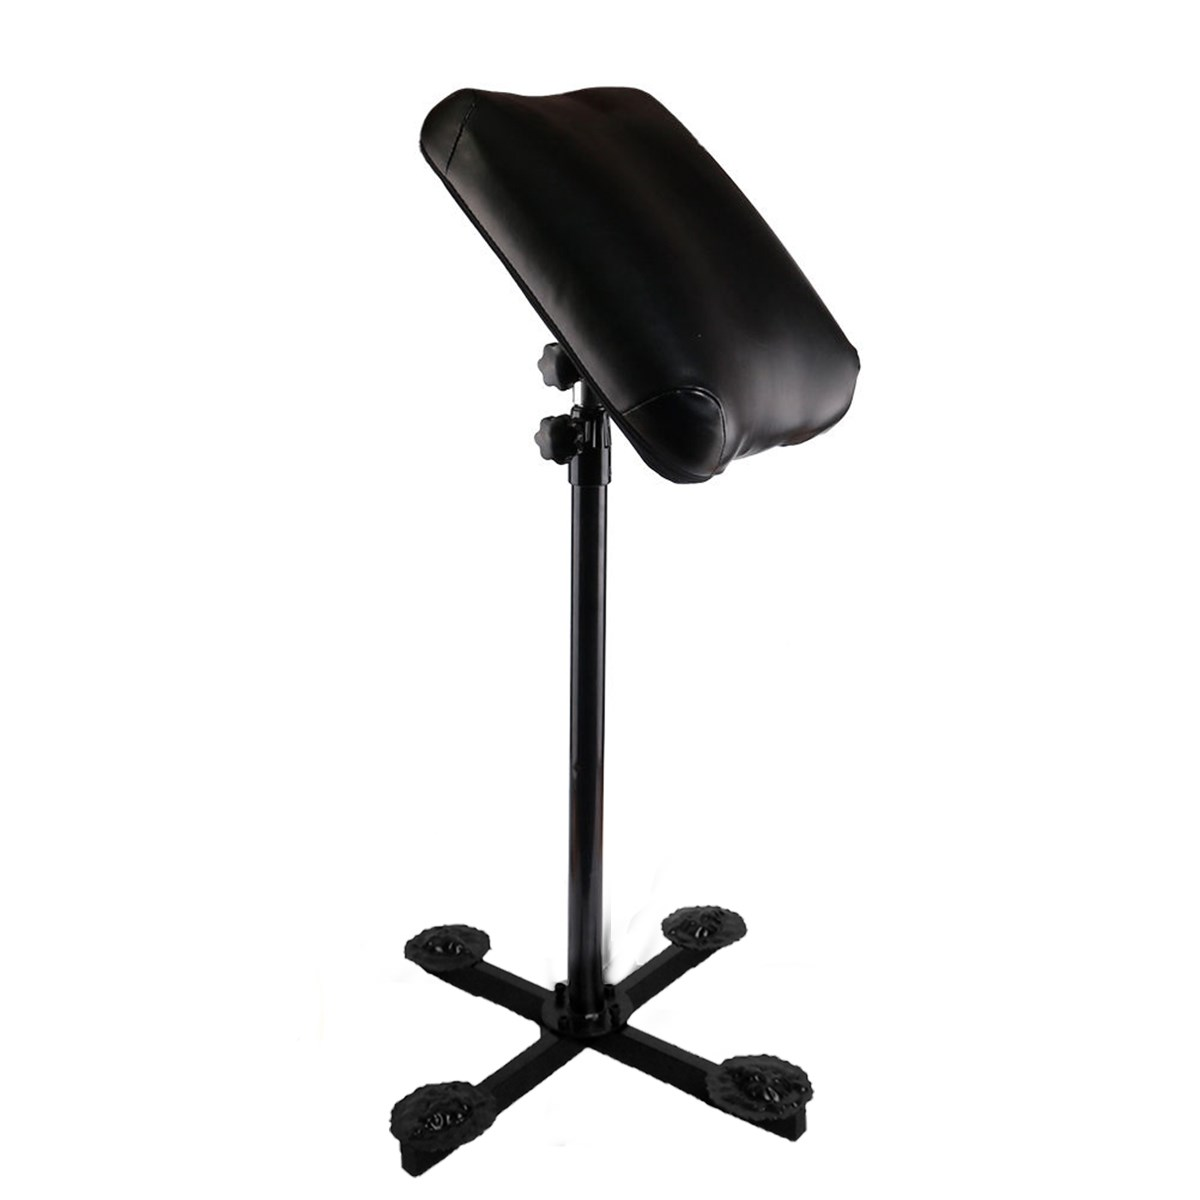 Adjustable Height Bracket Armrest Stand Holder Tattoo Furniture Tripod Machine Supplies Accesories With Sponge 80-110cm 2017 New цена 2016